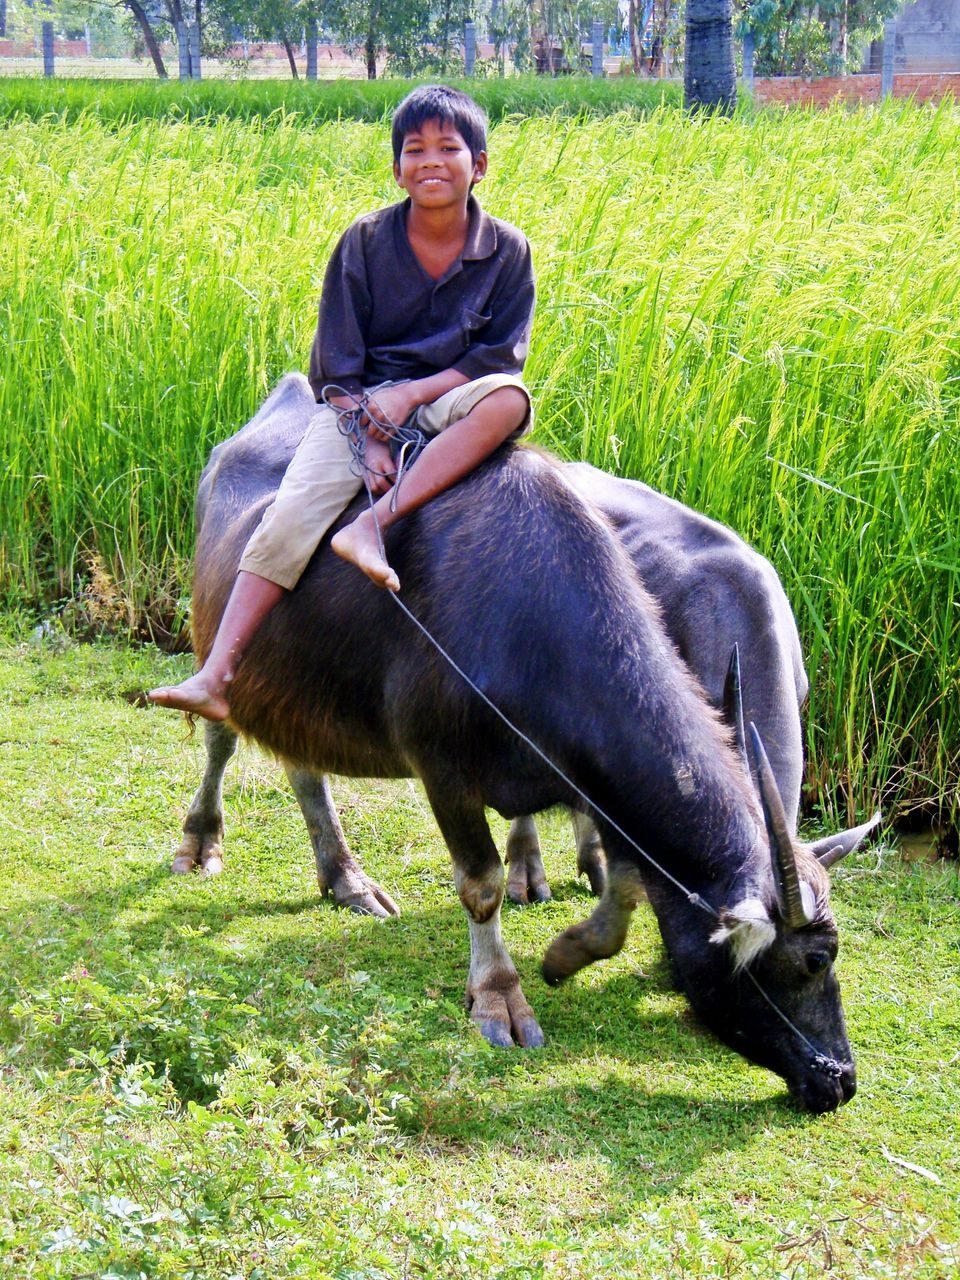 grass, field, farm, livestock, horse, one person, full length, agriculture, domestic animals, outdoors, one animal, happiness, day, one man only, riding, adult, sitting, rural scene, looking at camera, smiling, young adult, people, portrait, men, farmer, nature, real people, mammal, adults only, only men